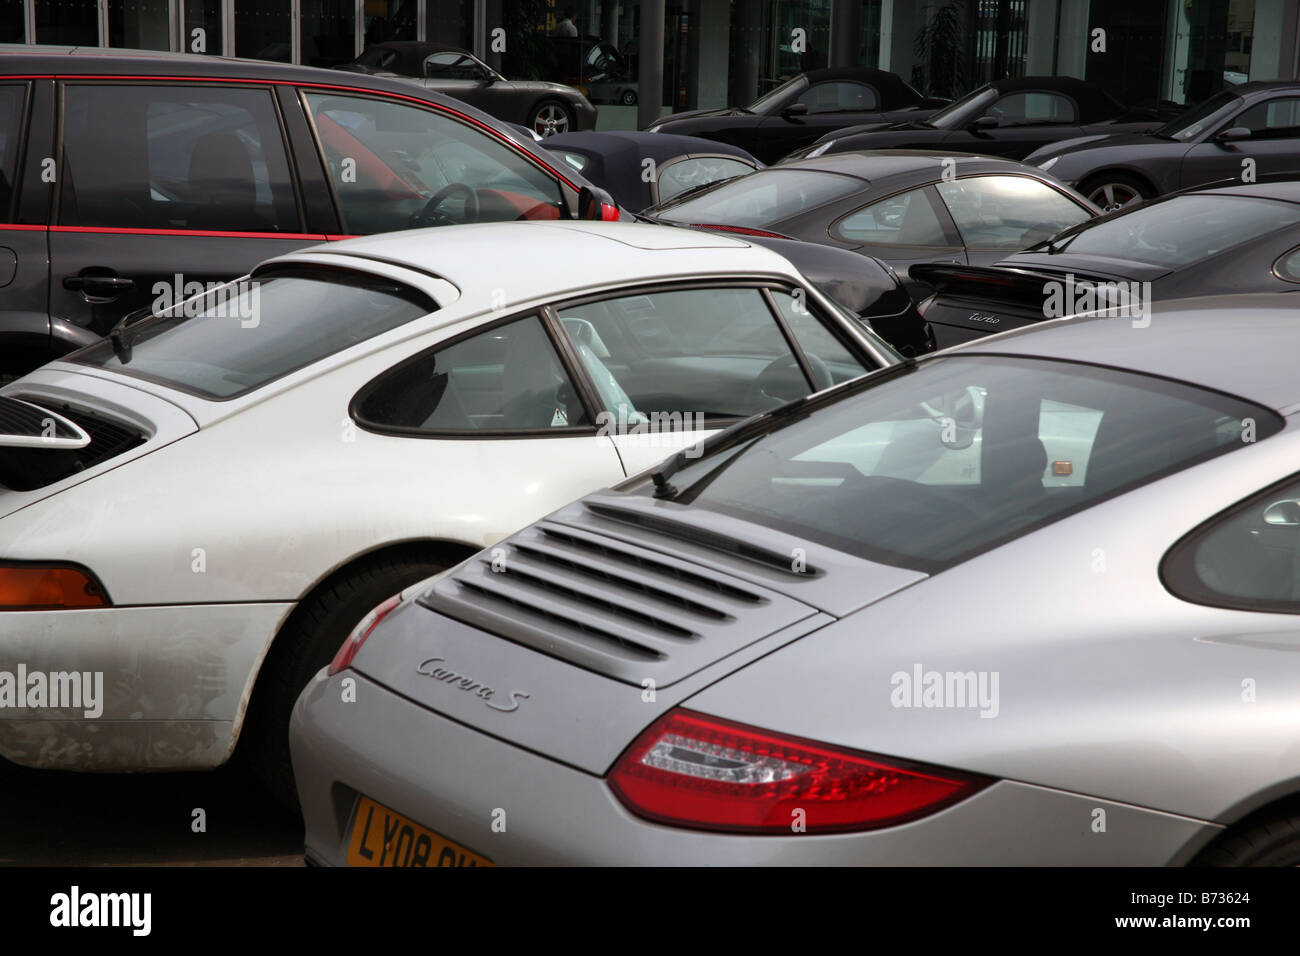 Porsche pictures of porsches : Credit crunch hits the City: unsold Porsches in East London ...